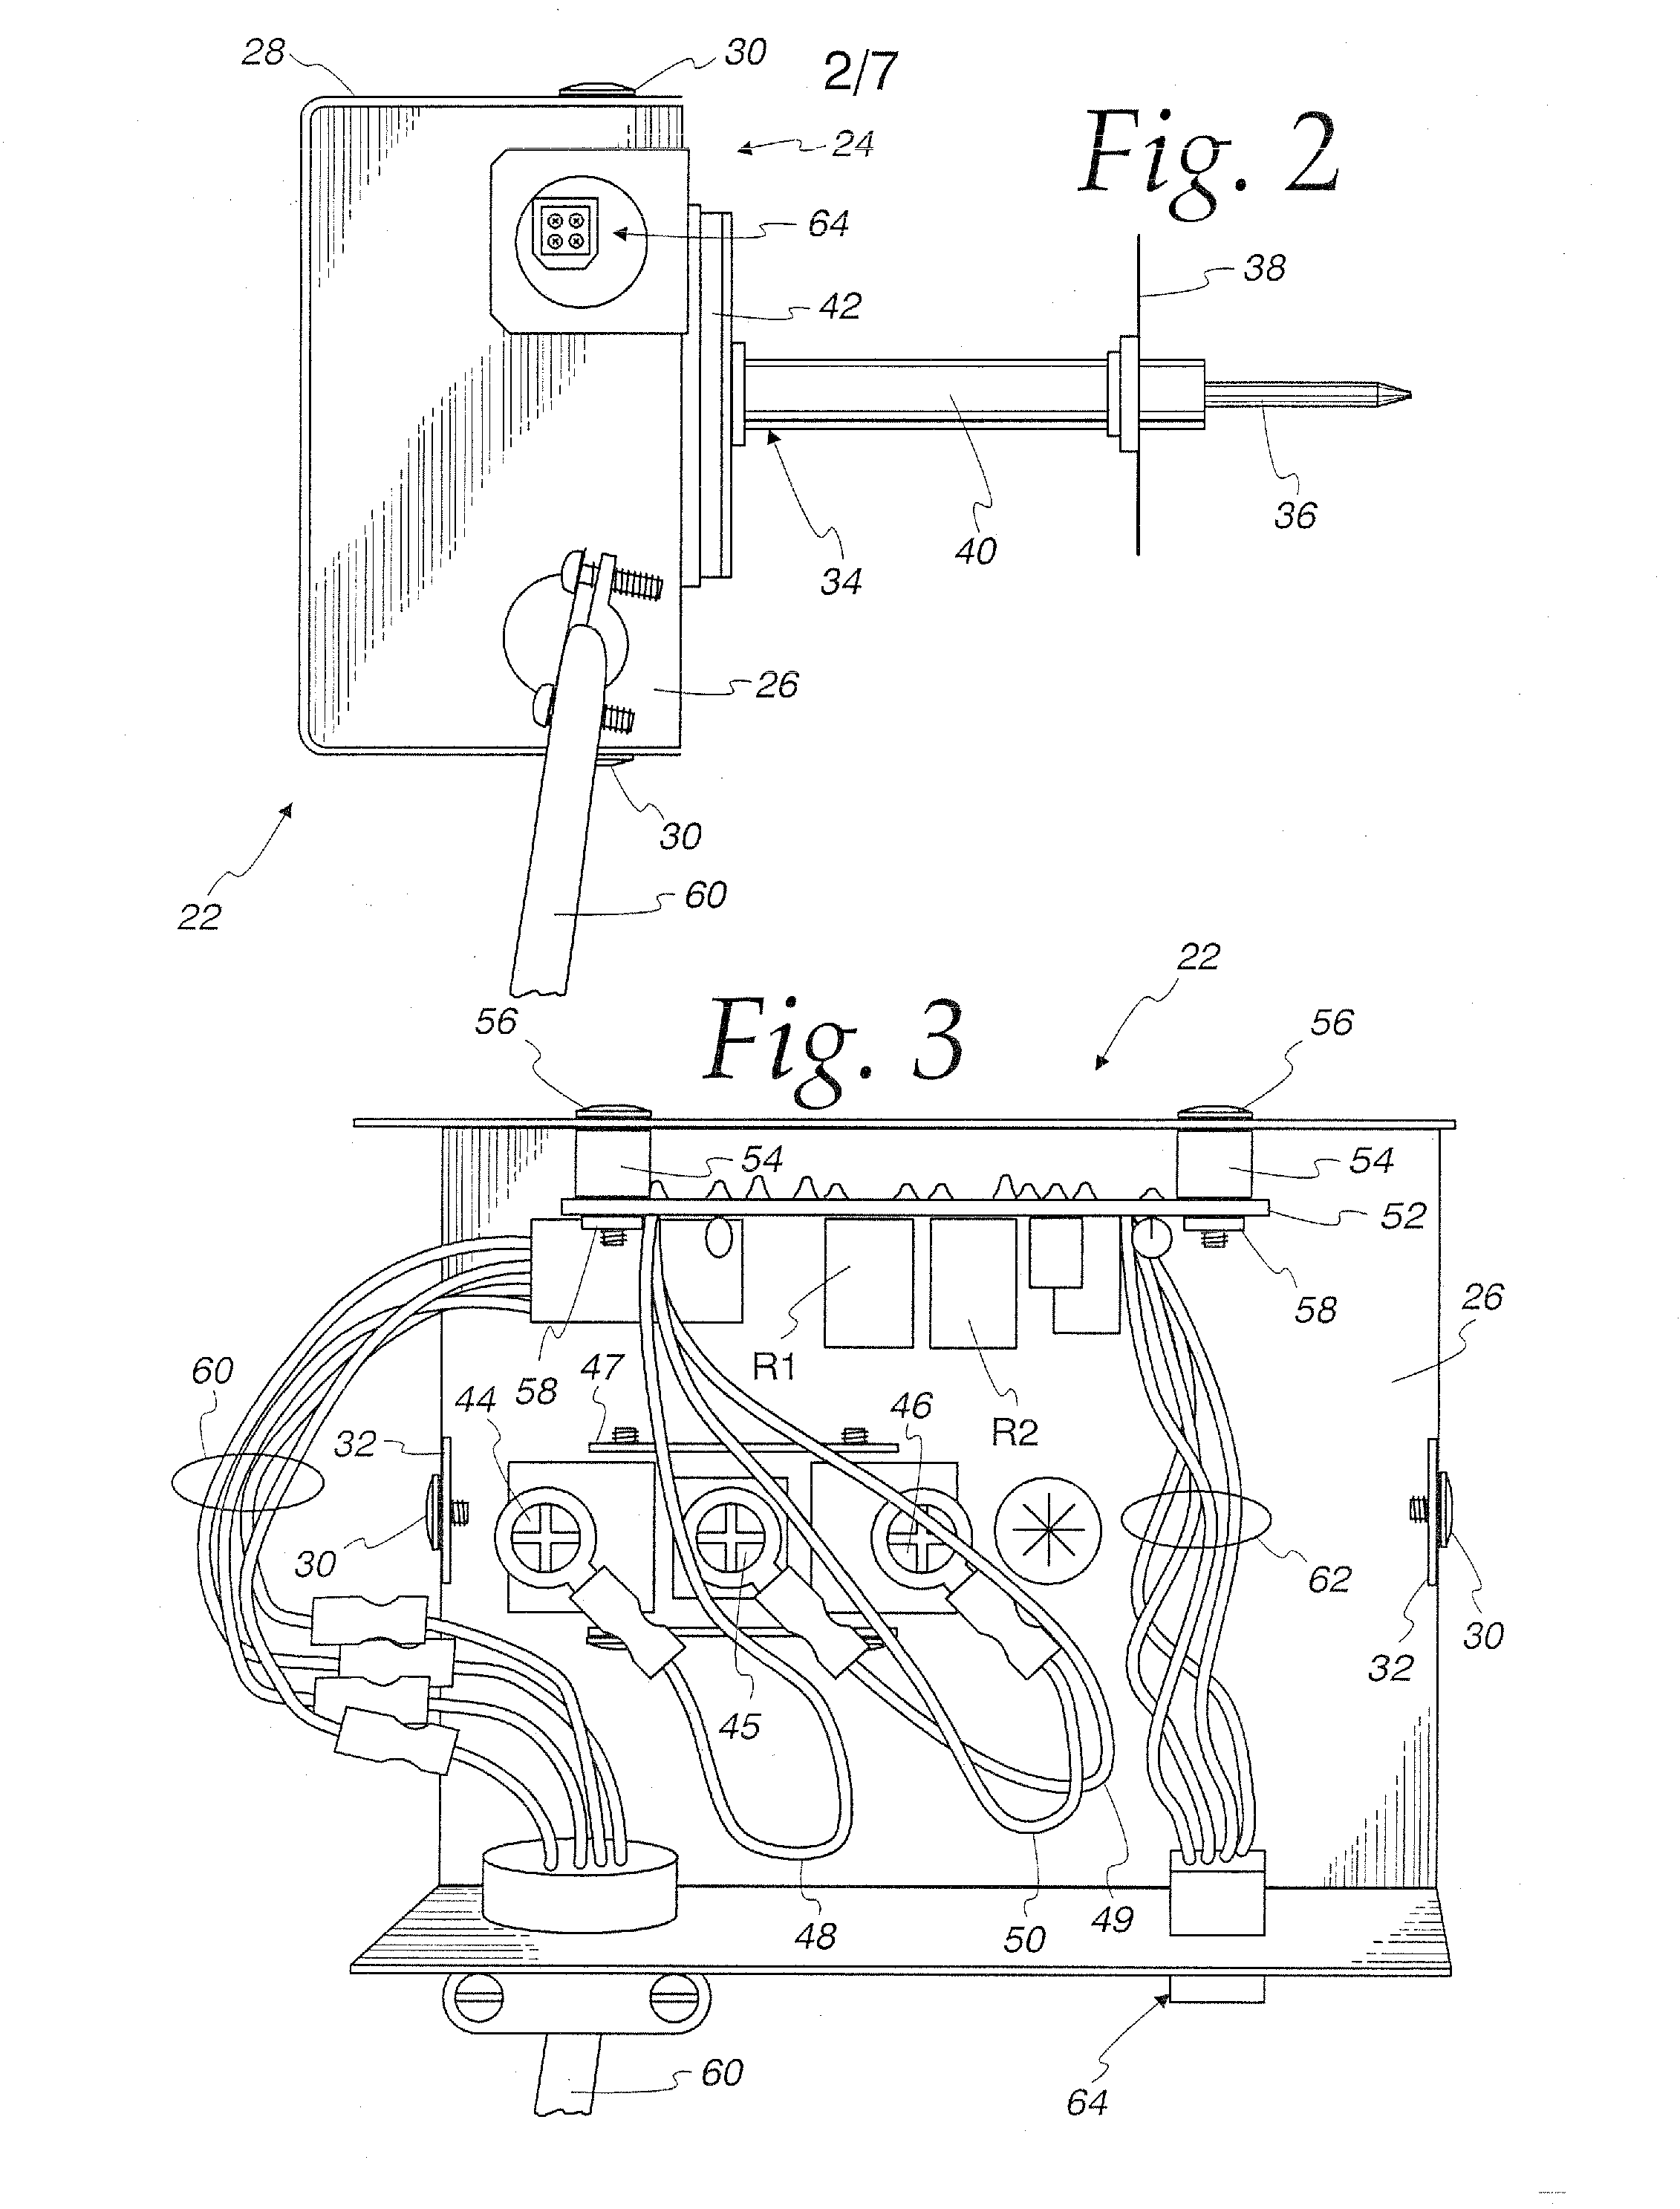 ... US20110114034A1 20110519 D00002 patent us20110114034 vent proving  system google patents Gvd Vent Damper 6 at cita Gvd 5 Wiring Diagram ...